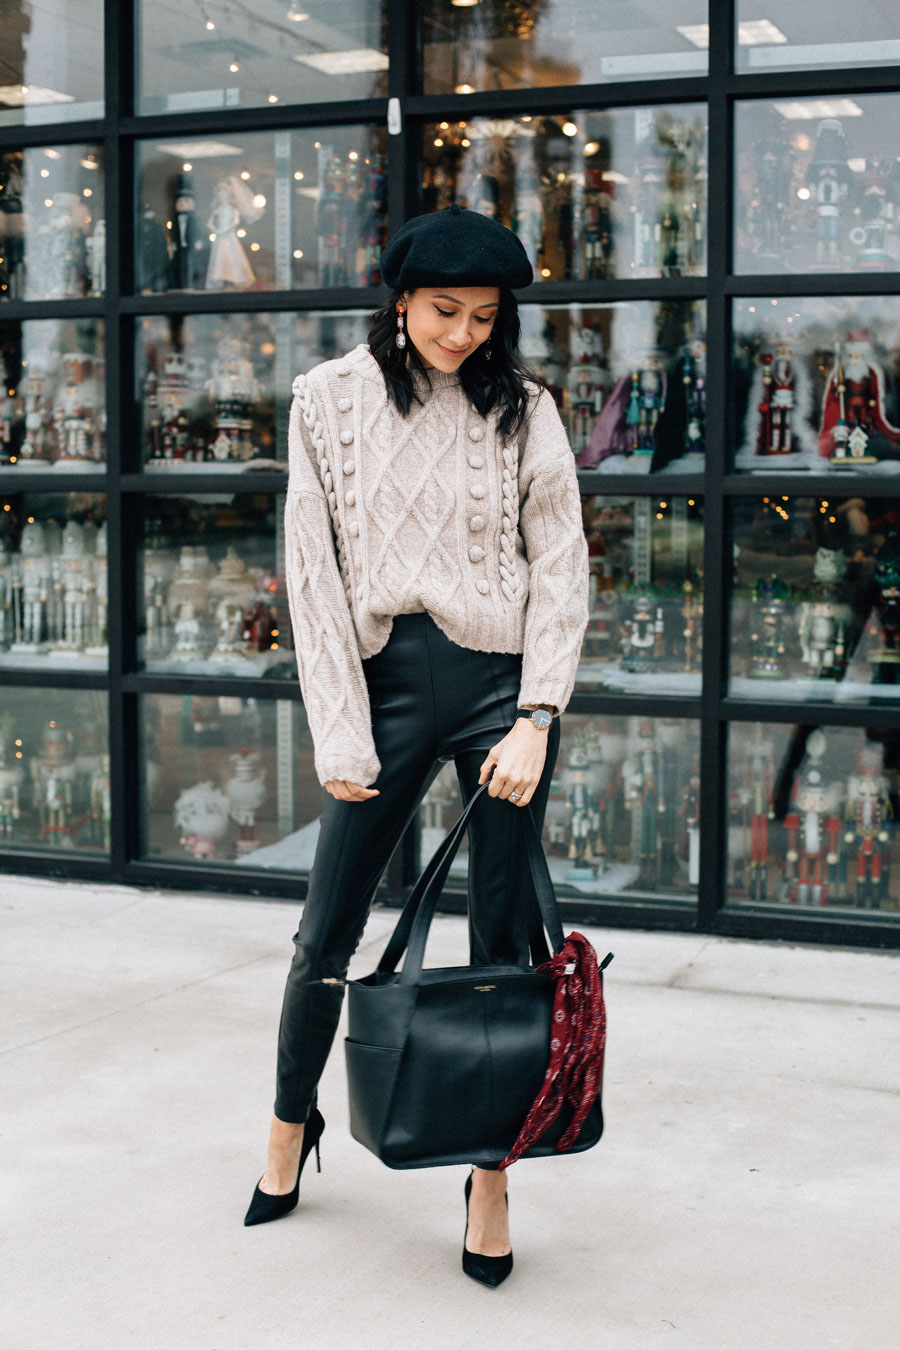 10 Sweaters That Make The Perfect Holiday Party Look